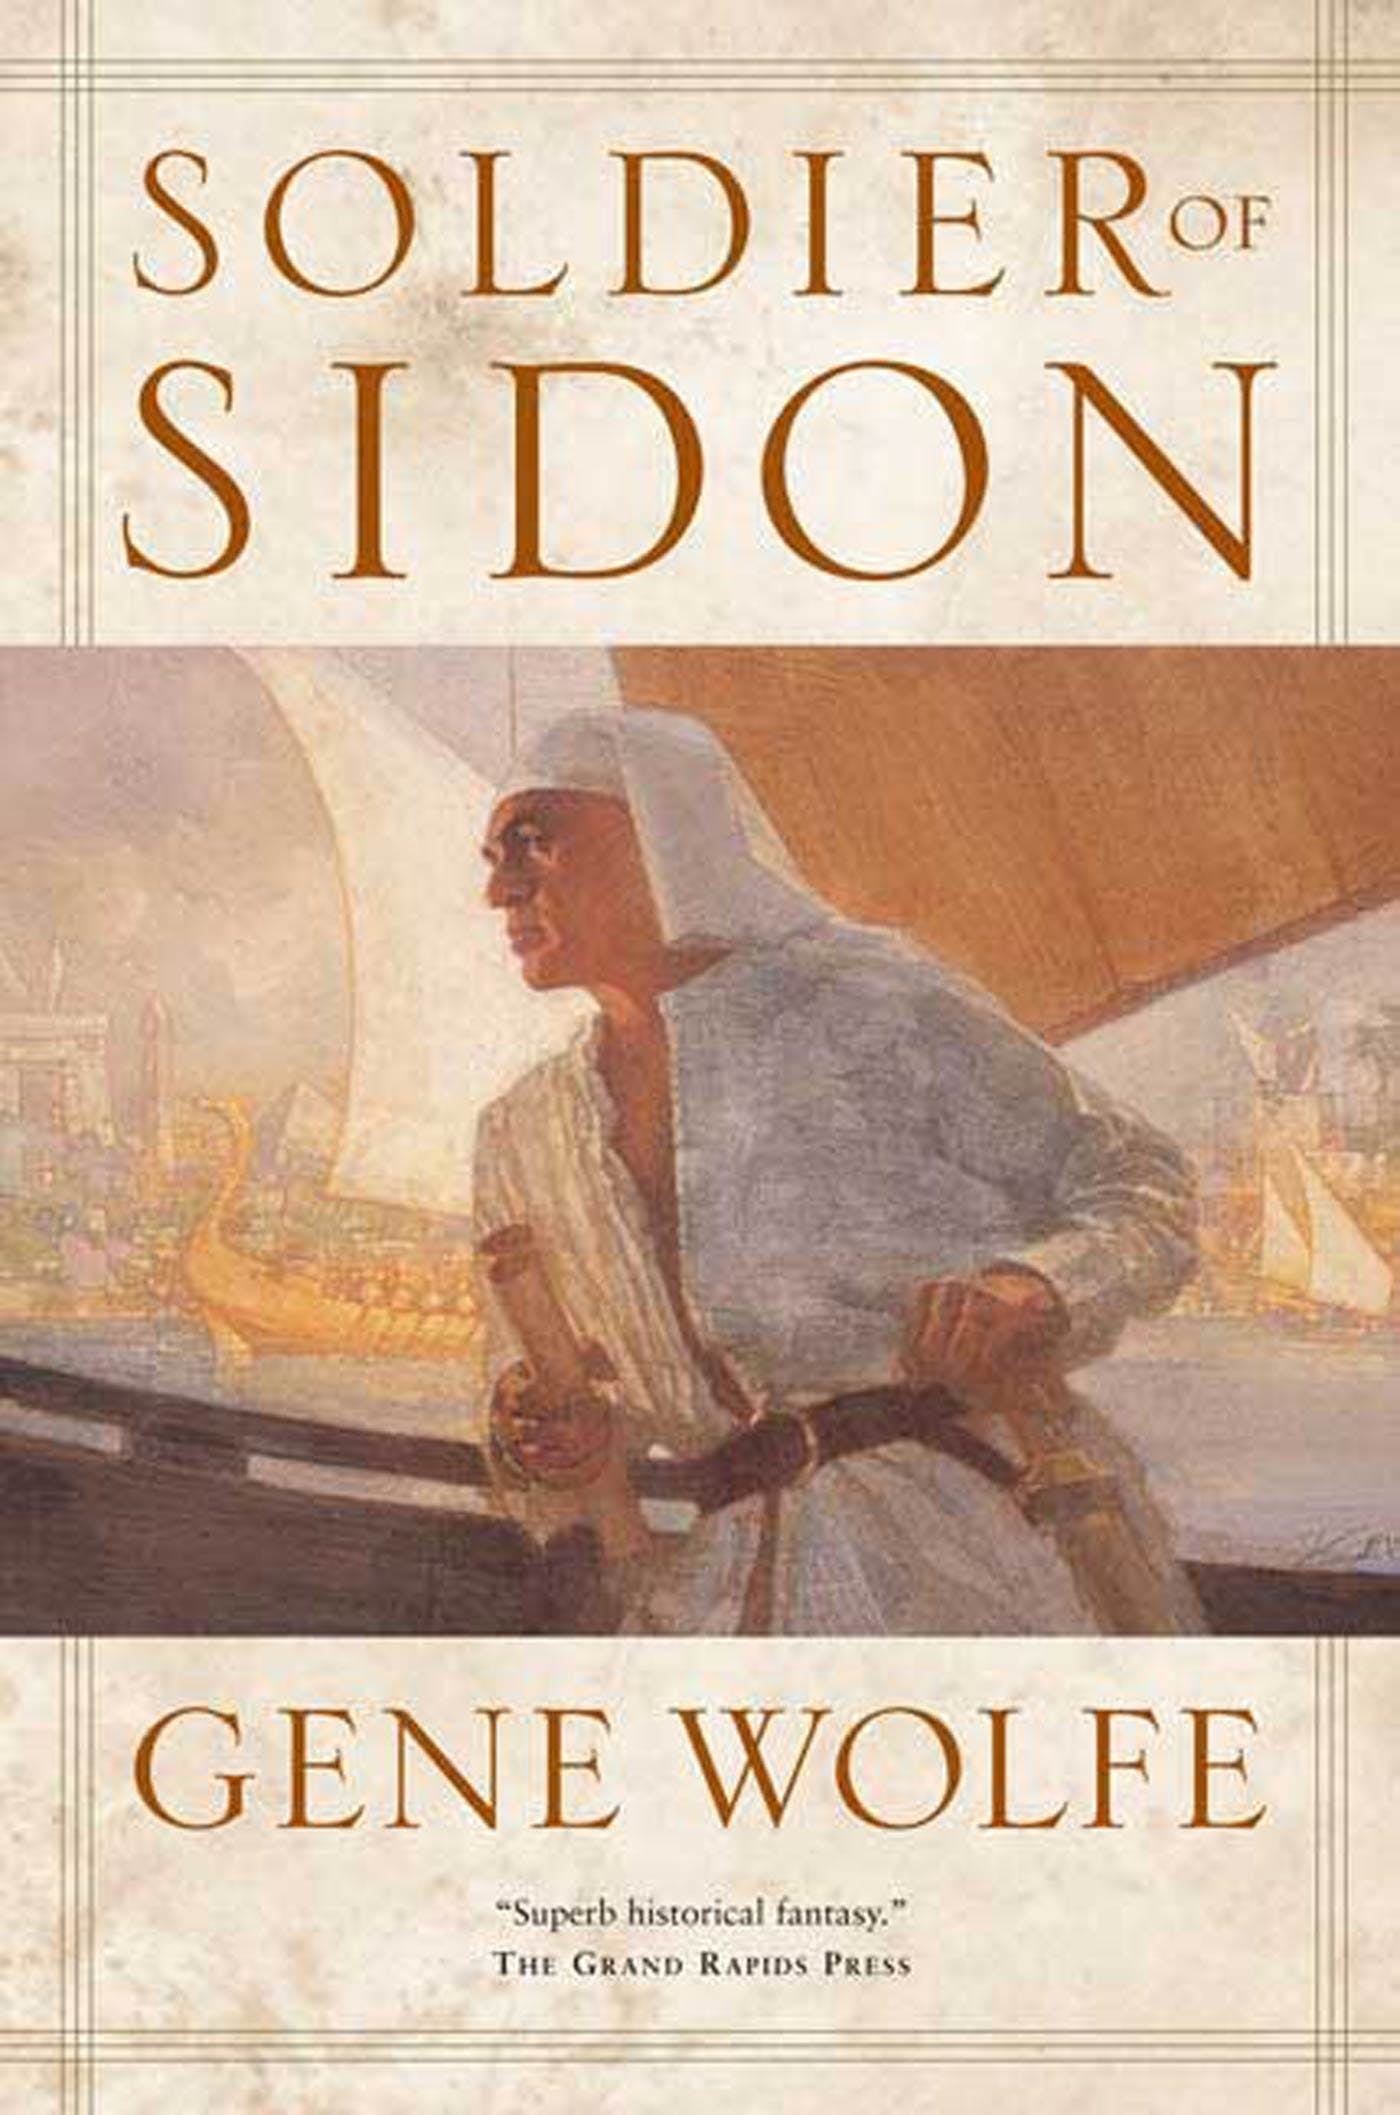 Image of Soldier of Sidon